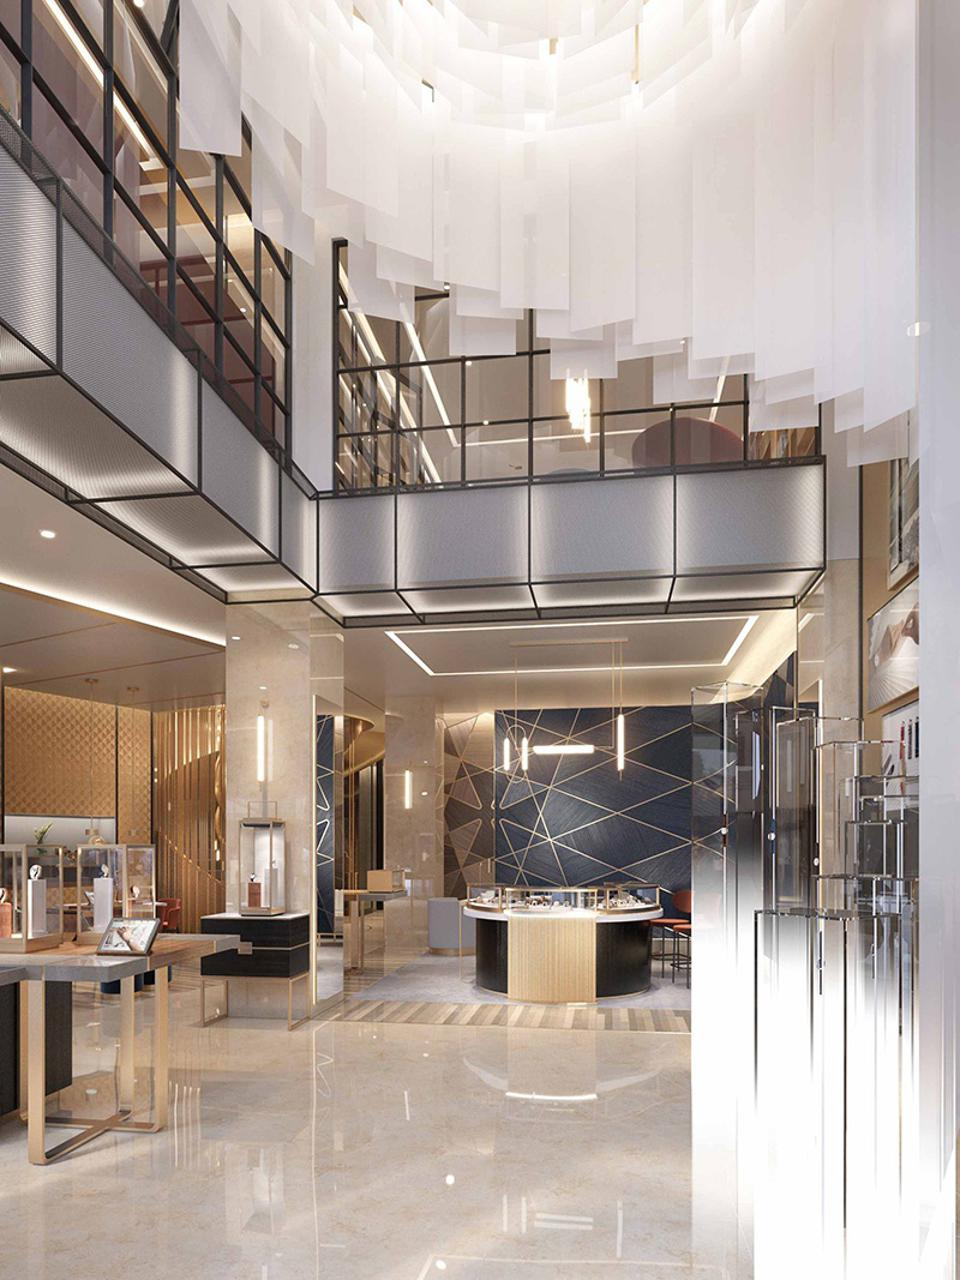 A staircase leads to the second floor lounge area and the strap customization center.